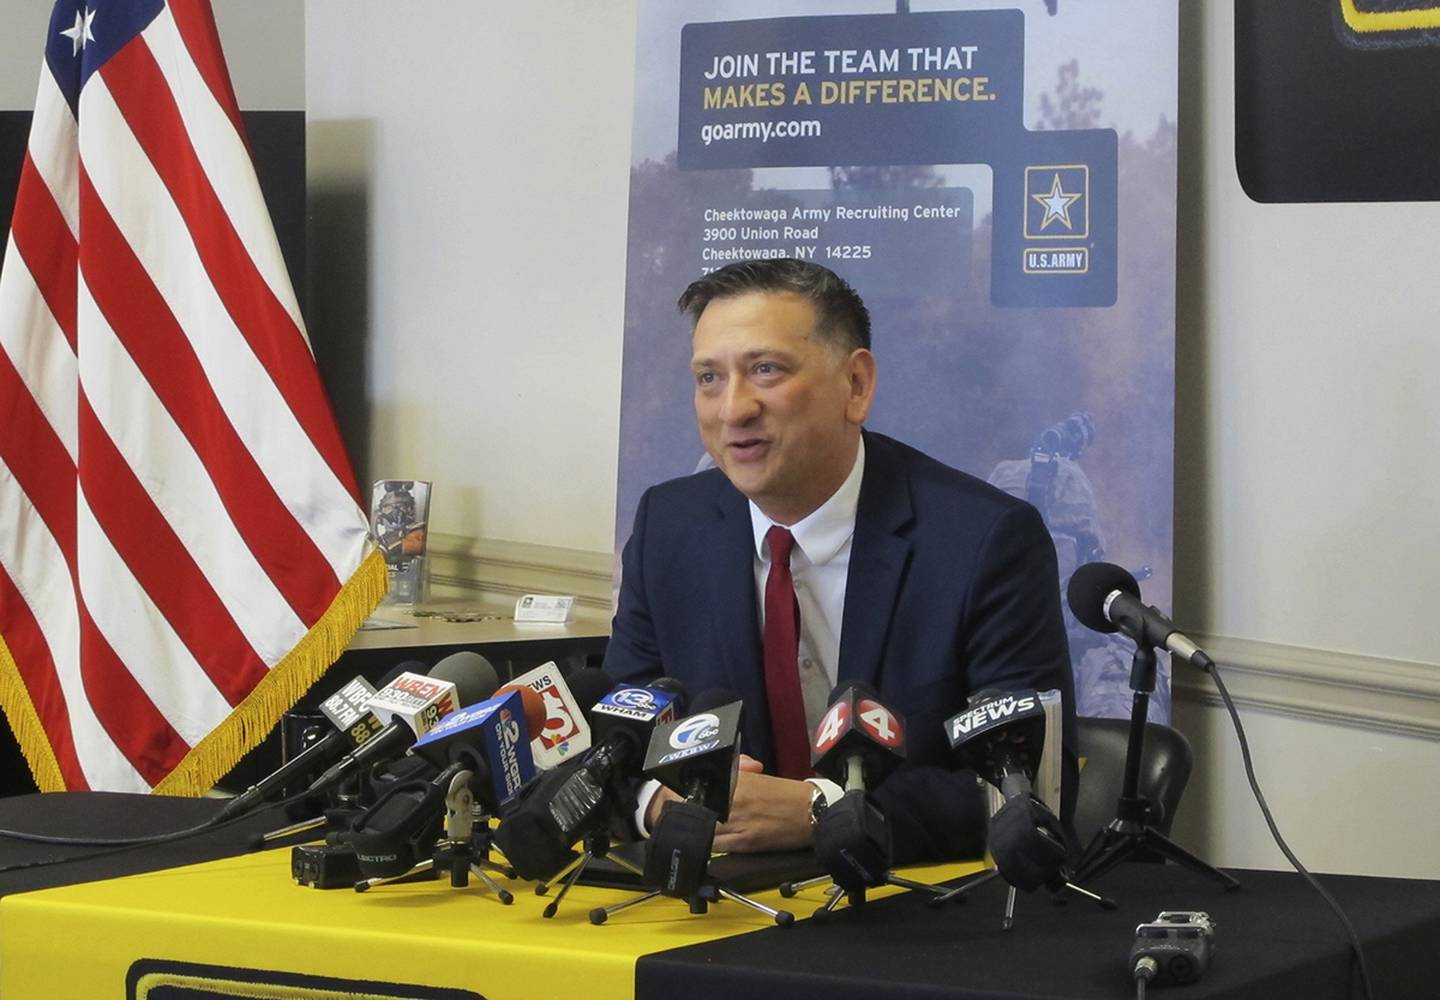 Staff Sgt. David Bellavia, of Lyndonville, N.Y., speaks at a news conference at an Army recruiting station in Cheektowaga, N.Y., Tuesday, June 11, 2019.